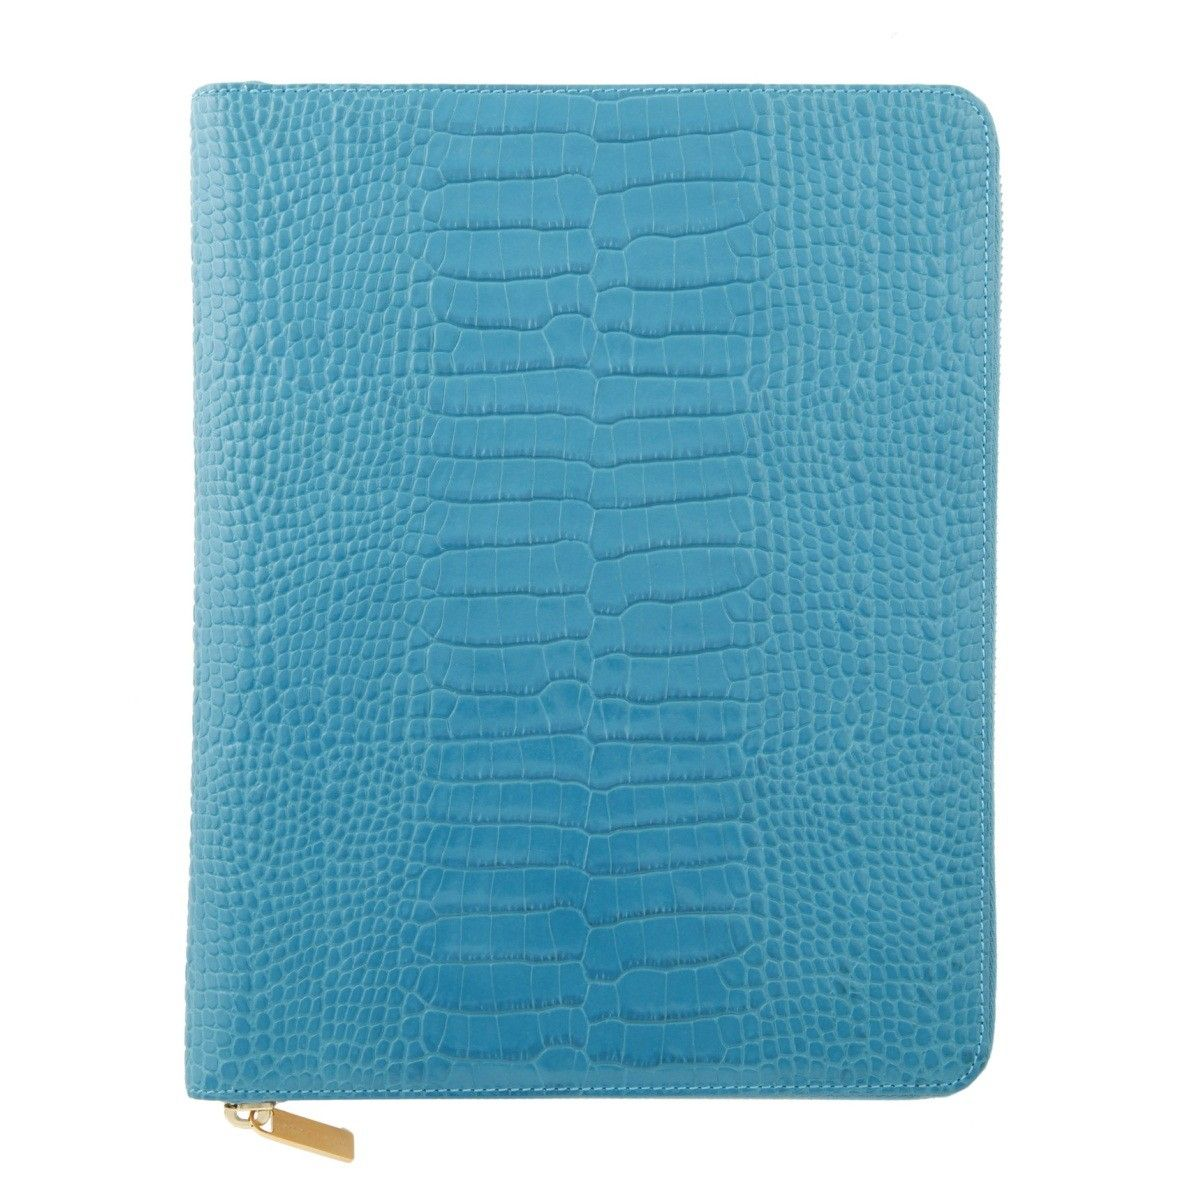 Zipped iPad 2 Case, Turquoise Collection - Smythson - For Her